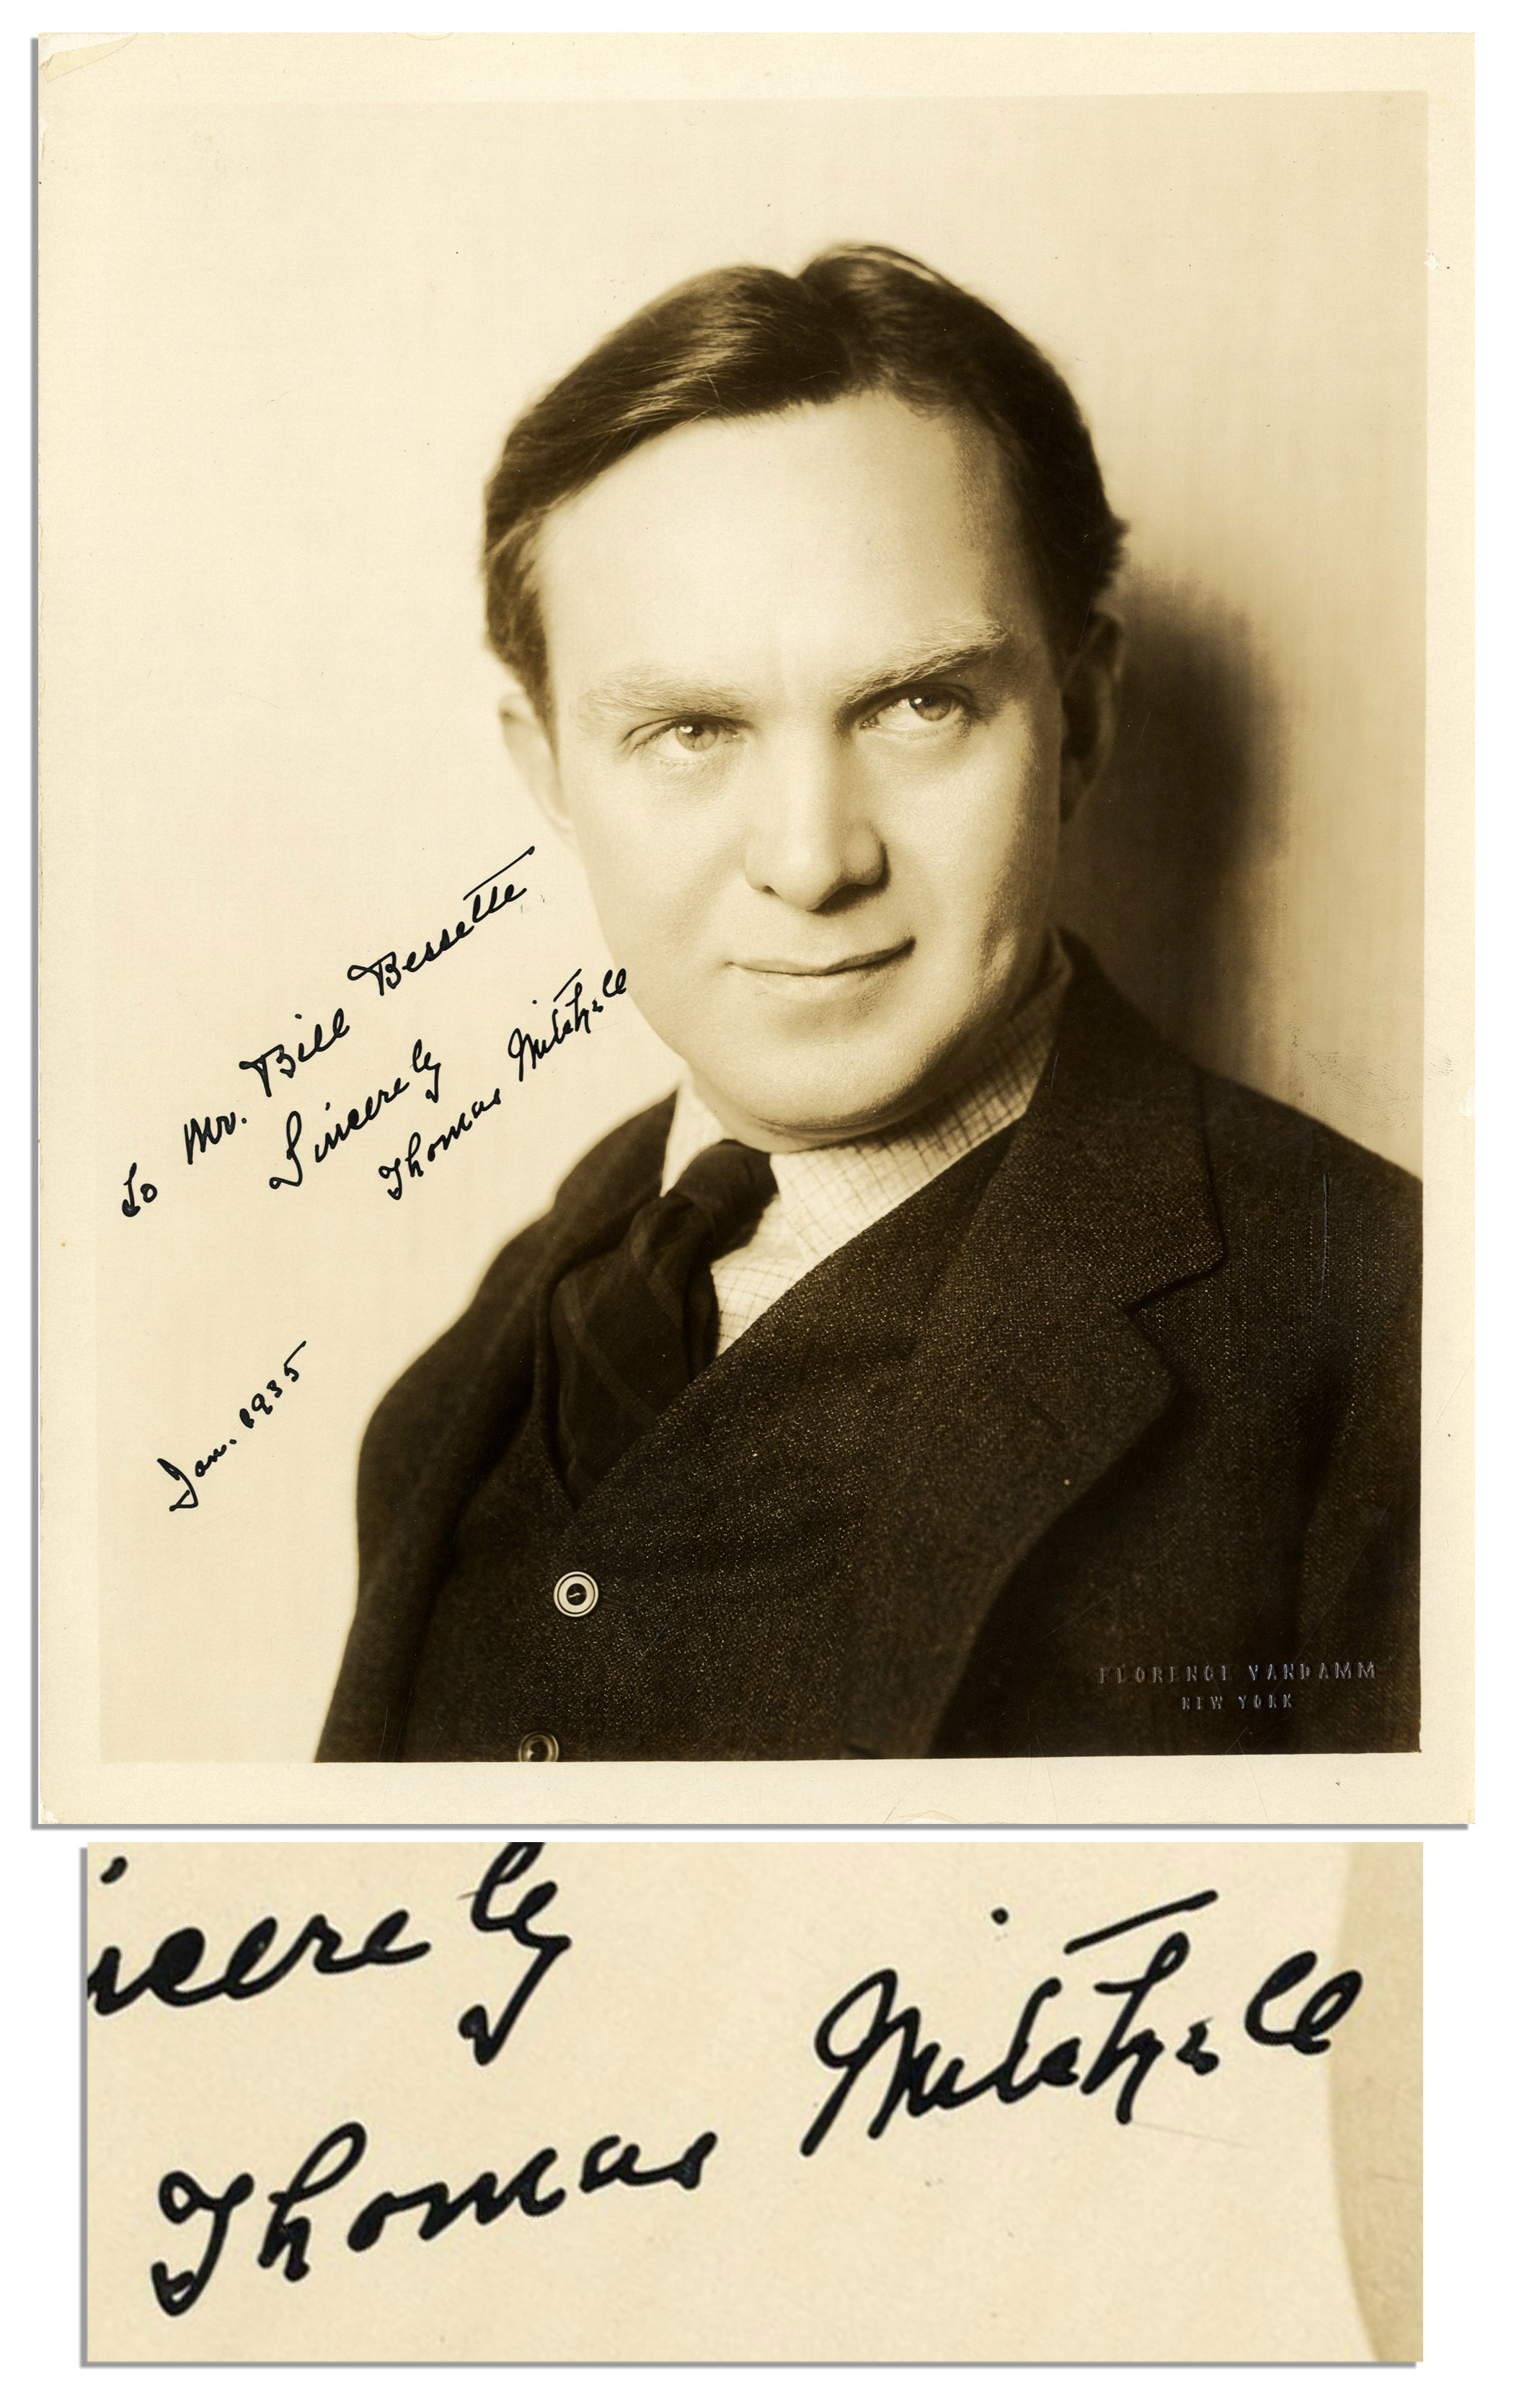 thomas mitchellthomas mitchell обувь, thomas mitchell обувь отзывы, thomas mitchell tri pointe, thomas mitchell bespoke, thomas mitchell quotes, thomas mitchell football, thomas mitchell, thomas mitchell actor, томас митчелл, thomas mitchell photography, thomas mitchell america's got talent, thomas mitchell primary school, thomas mitchell park, thomas mitchell explorer, thomas mitchell facebook, thomas mitchell homes, thomas mitchell imdb, thomas mitchell ontario, thomas mitchell obituary, thomas mitchell clothiers